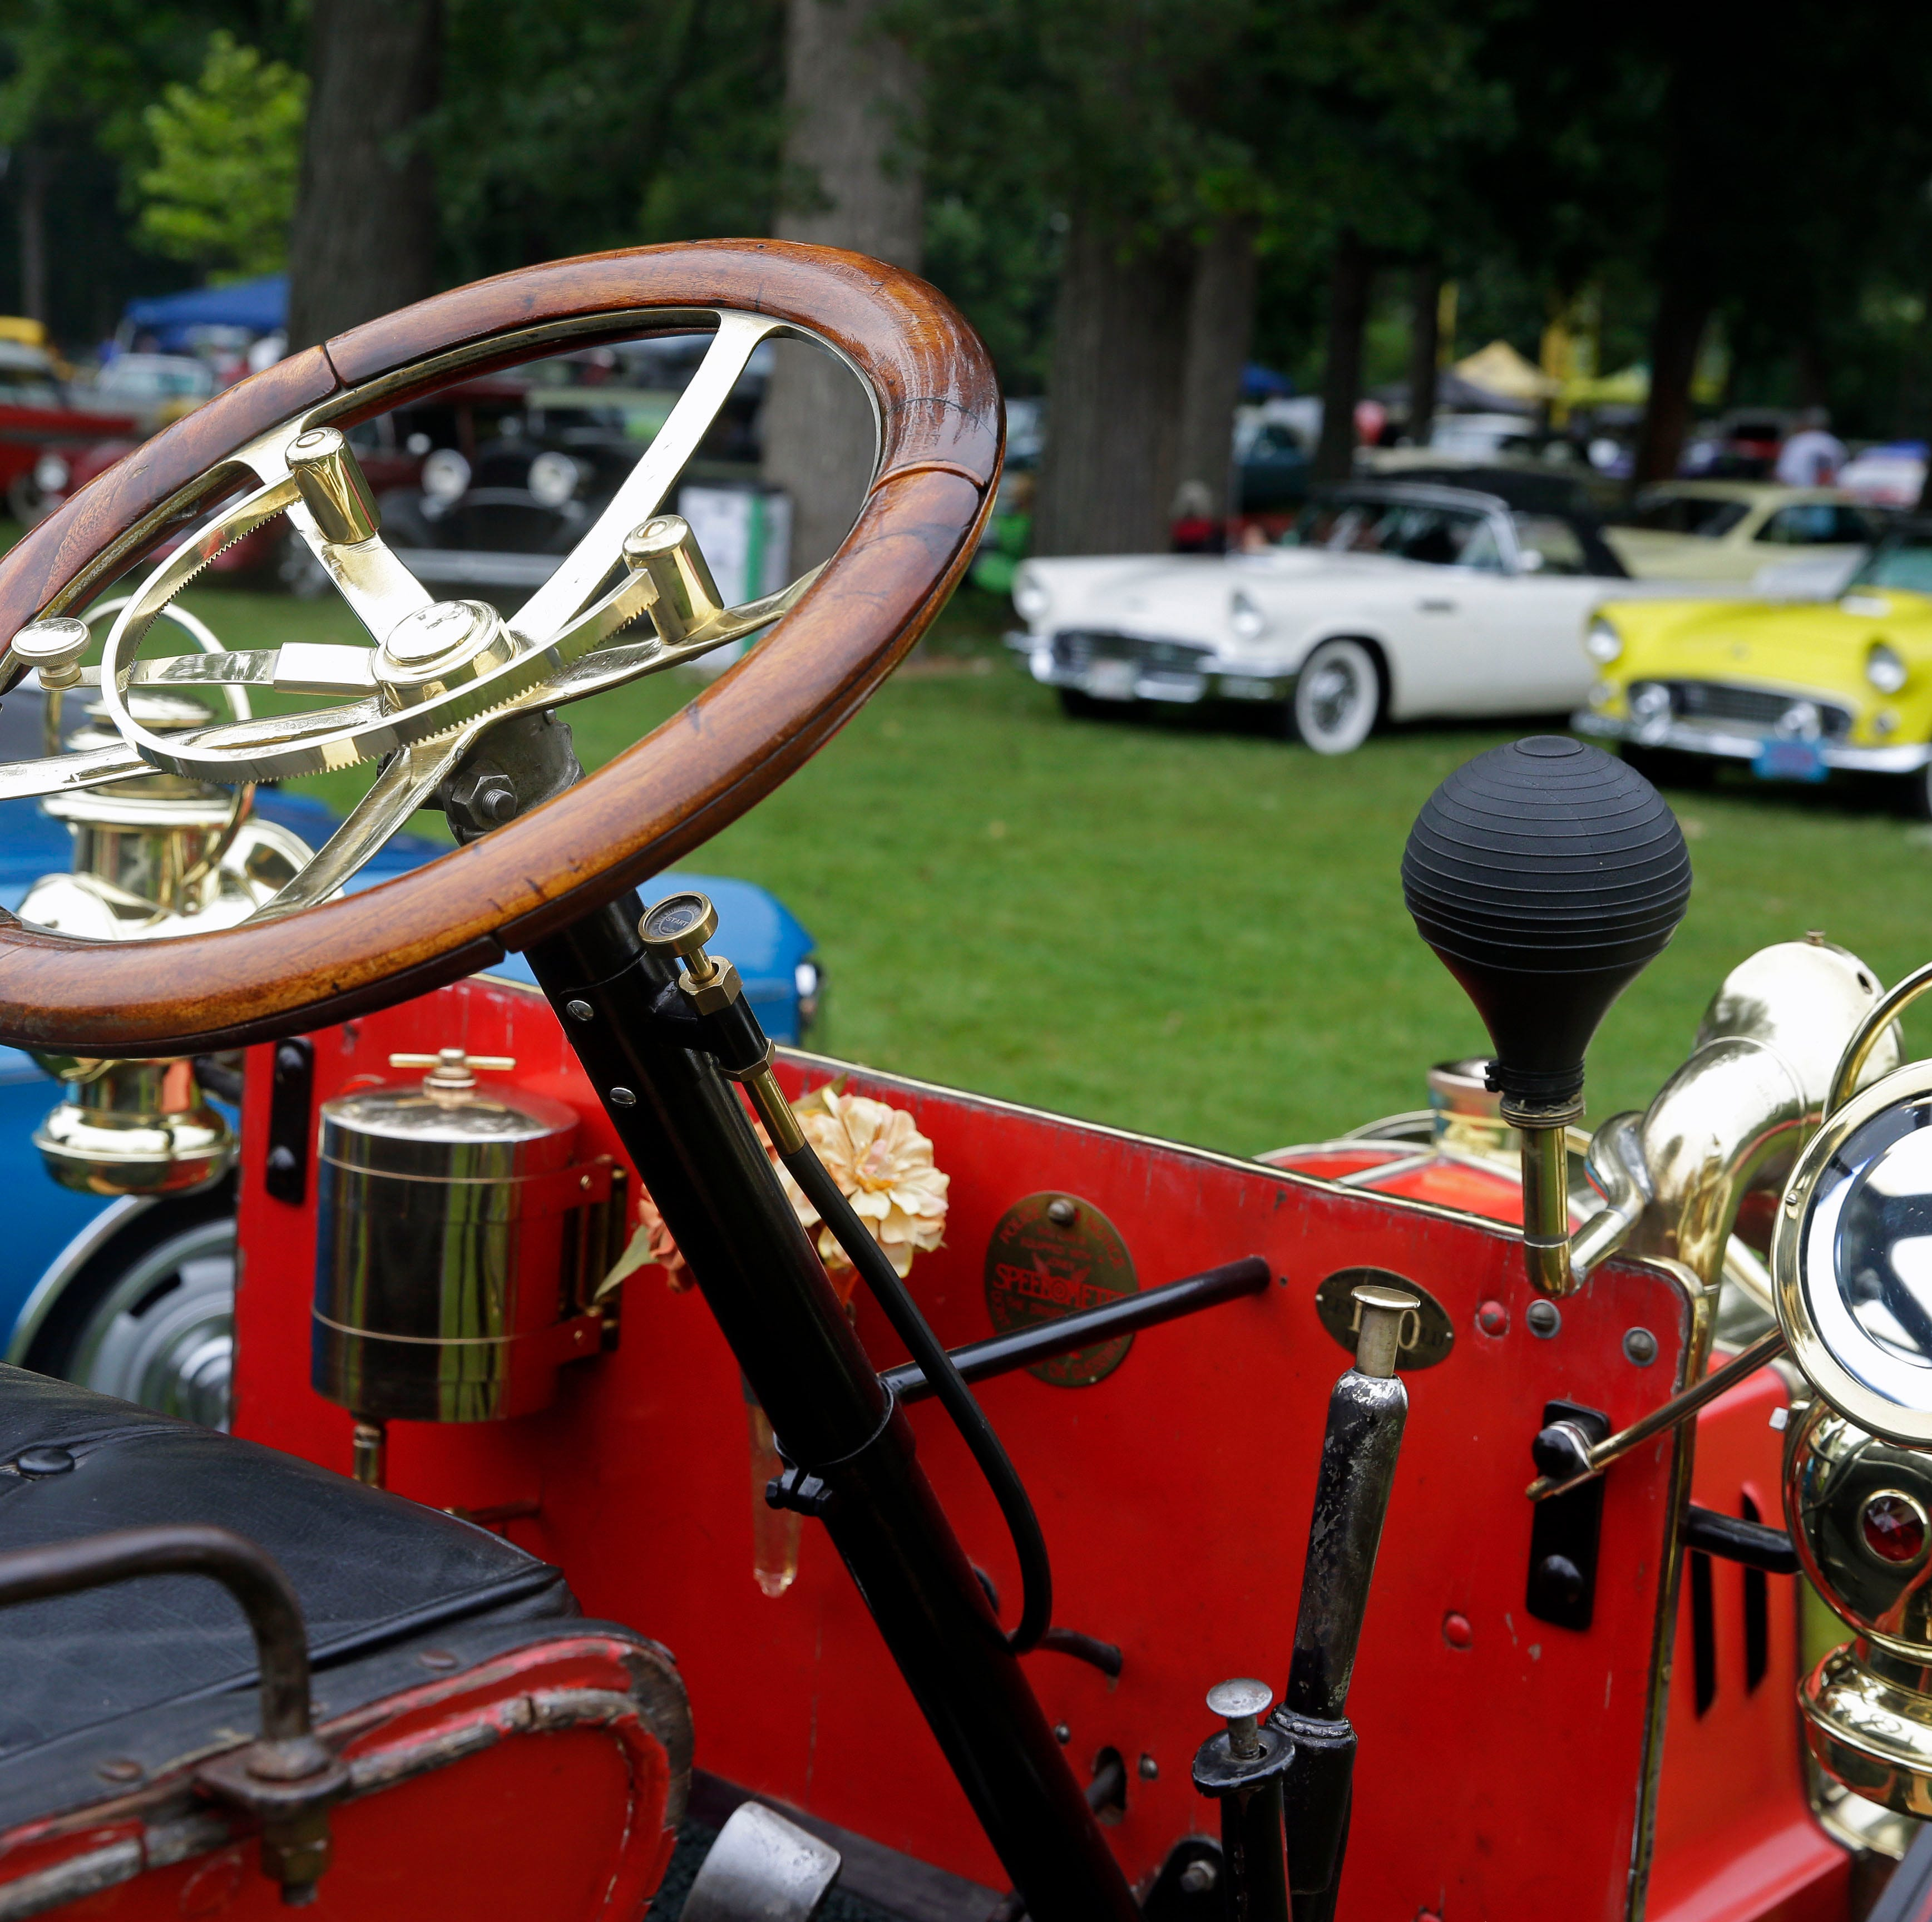 Rows of cars are on display as the Appleton Old Car Show and Swap Meet takes place Sunday, July 22, 2018, at Pierce Park in Appleton, Wis.Ron Page/USA TODAY NETWORK-Wisconsin